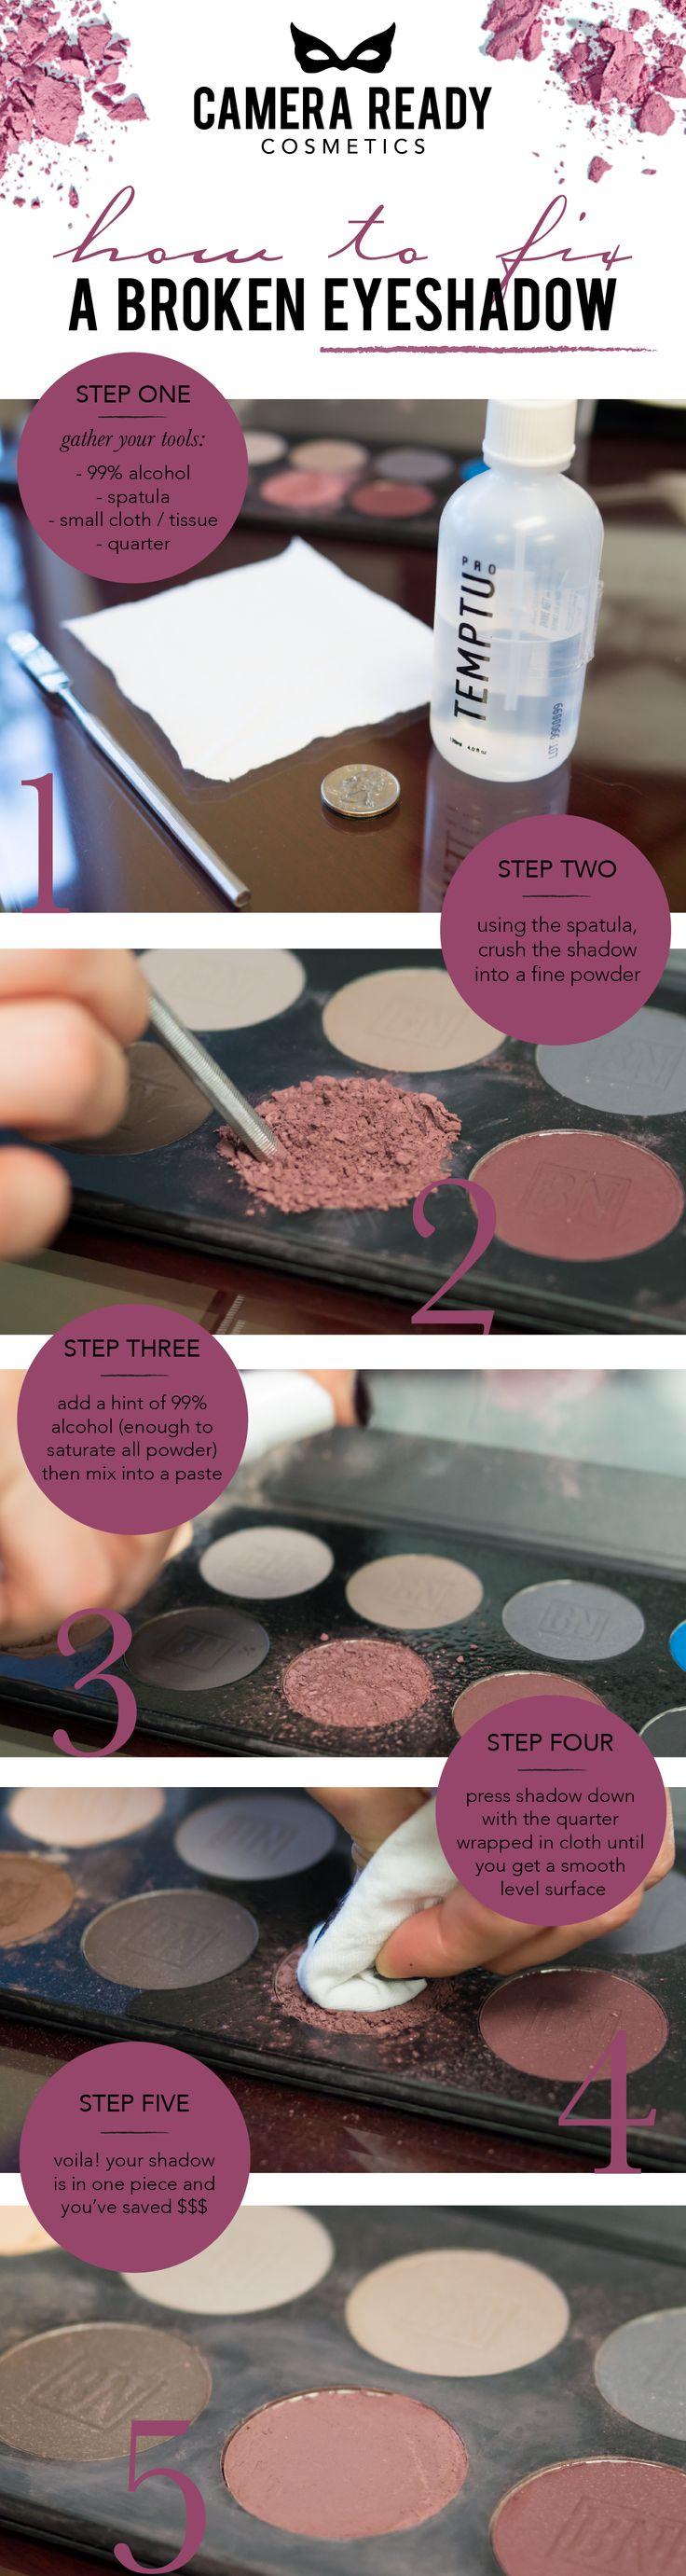 How to fix broken powder makeup with alcohol in four simple steps - Broke Your Precious Eyeshadow Don T Worry Darling Here S How To Fix